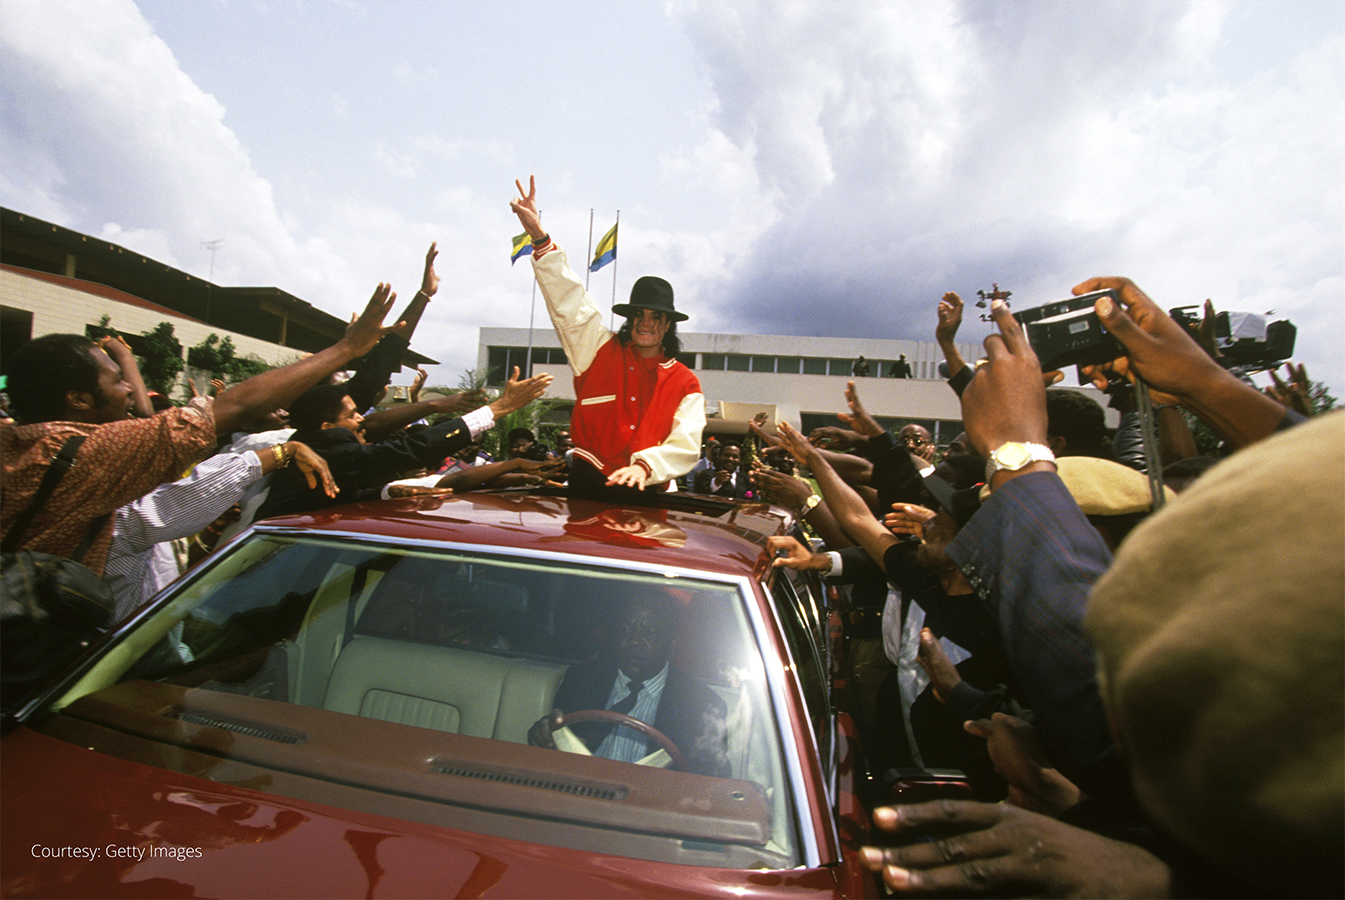 In 1992, MJ Visited Disabled Children Throughout Parts of Africa